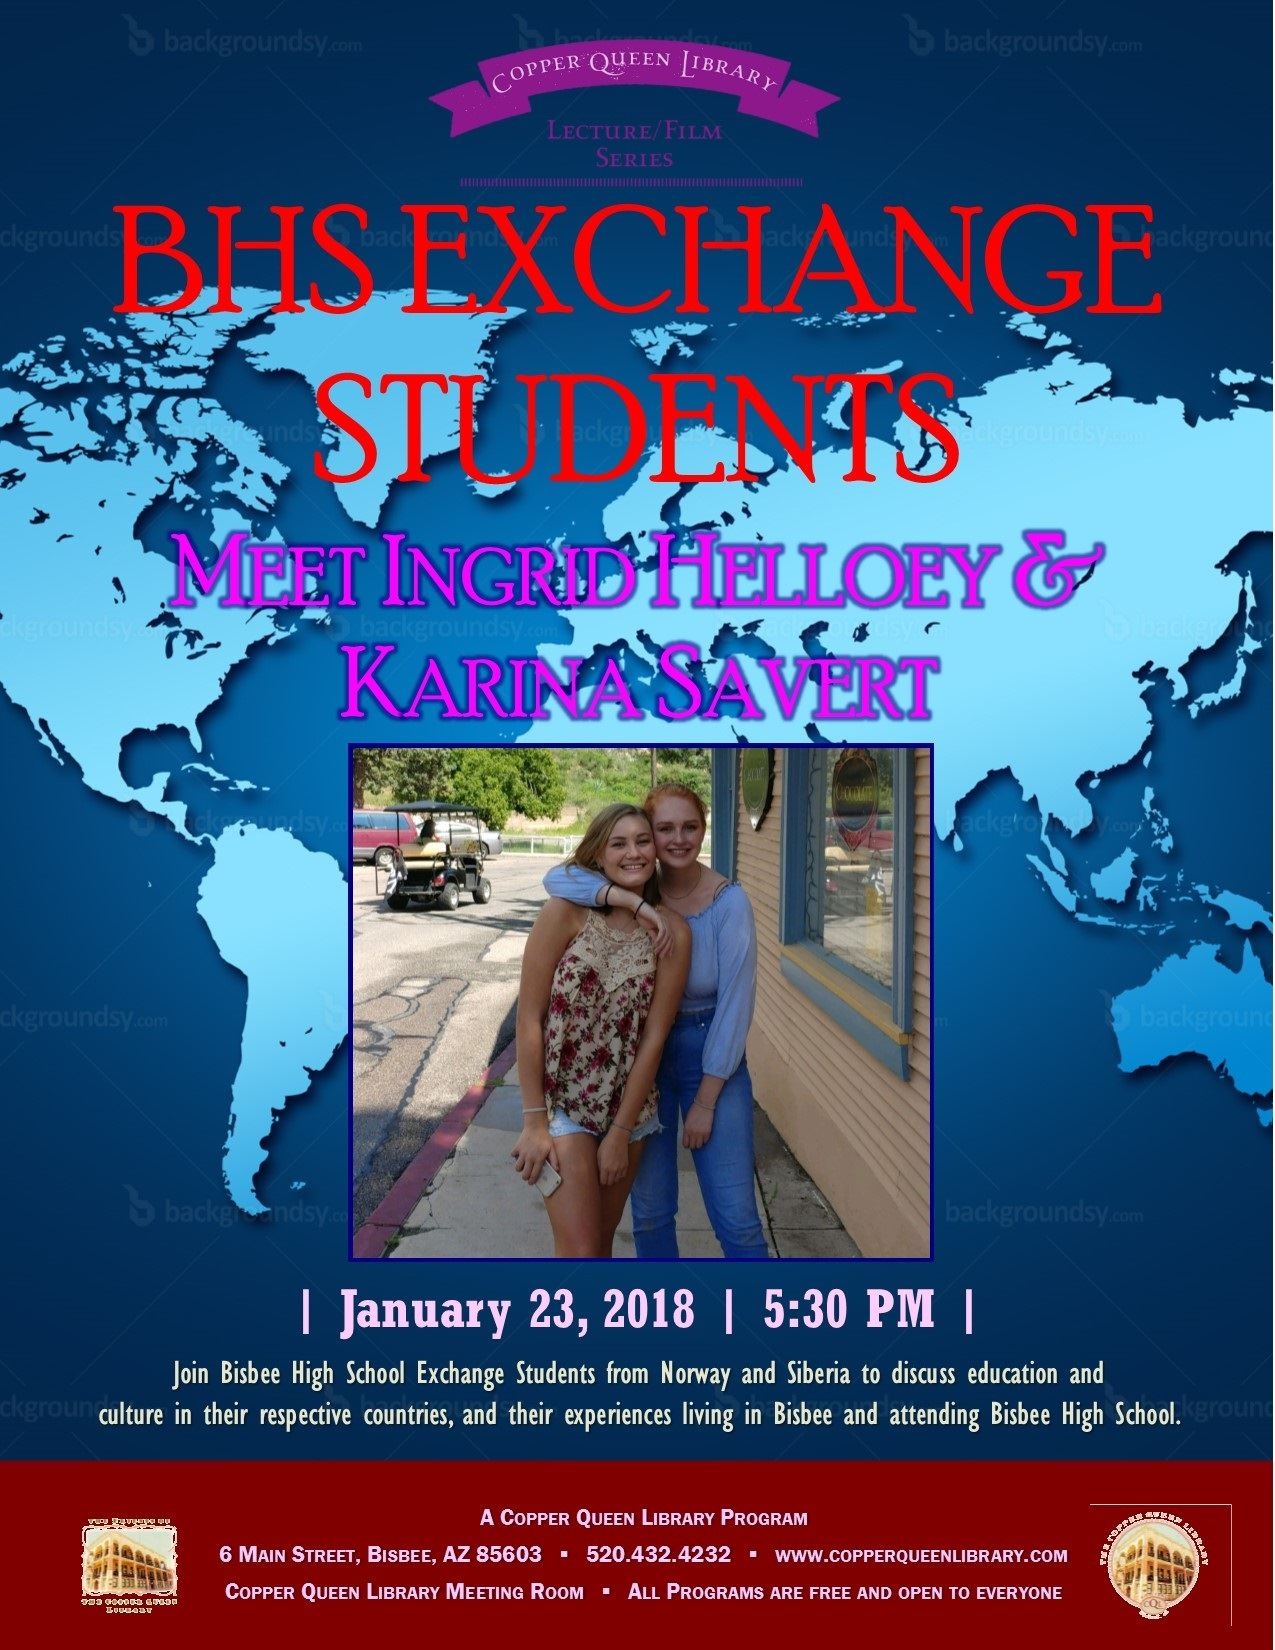 BHS EXCHANGE STUDENTS 1.23.2018 8.5 x 11